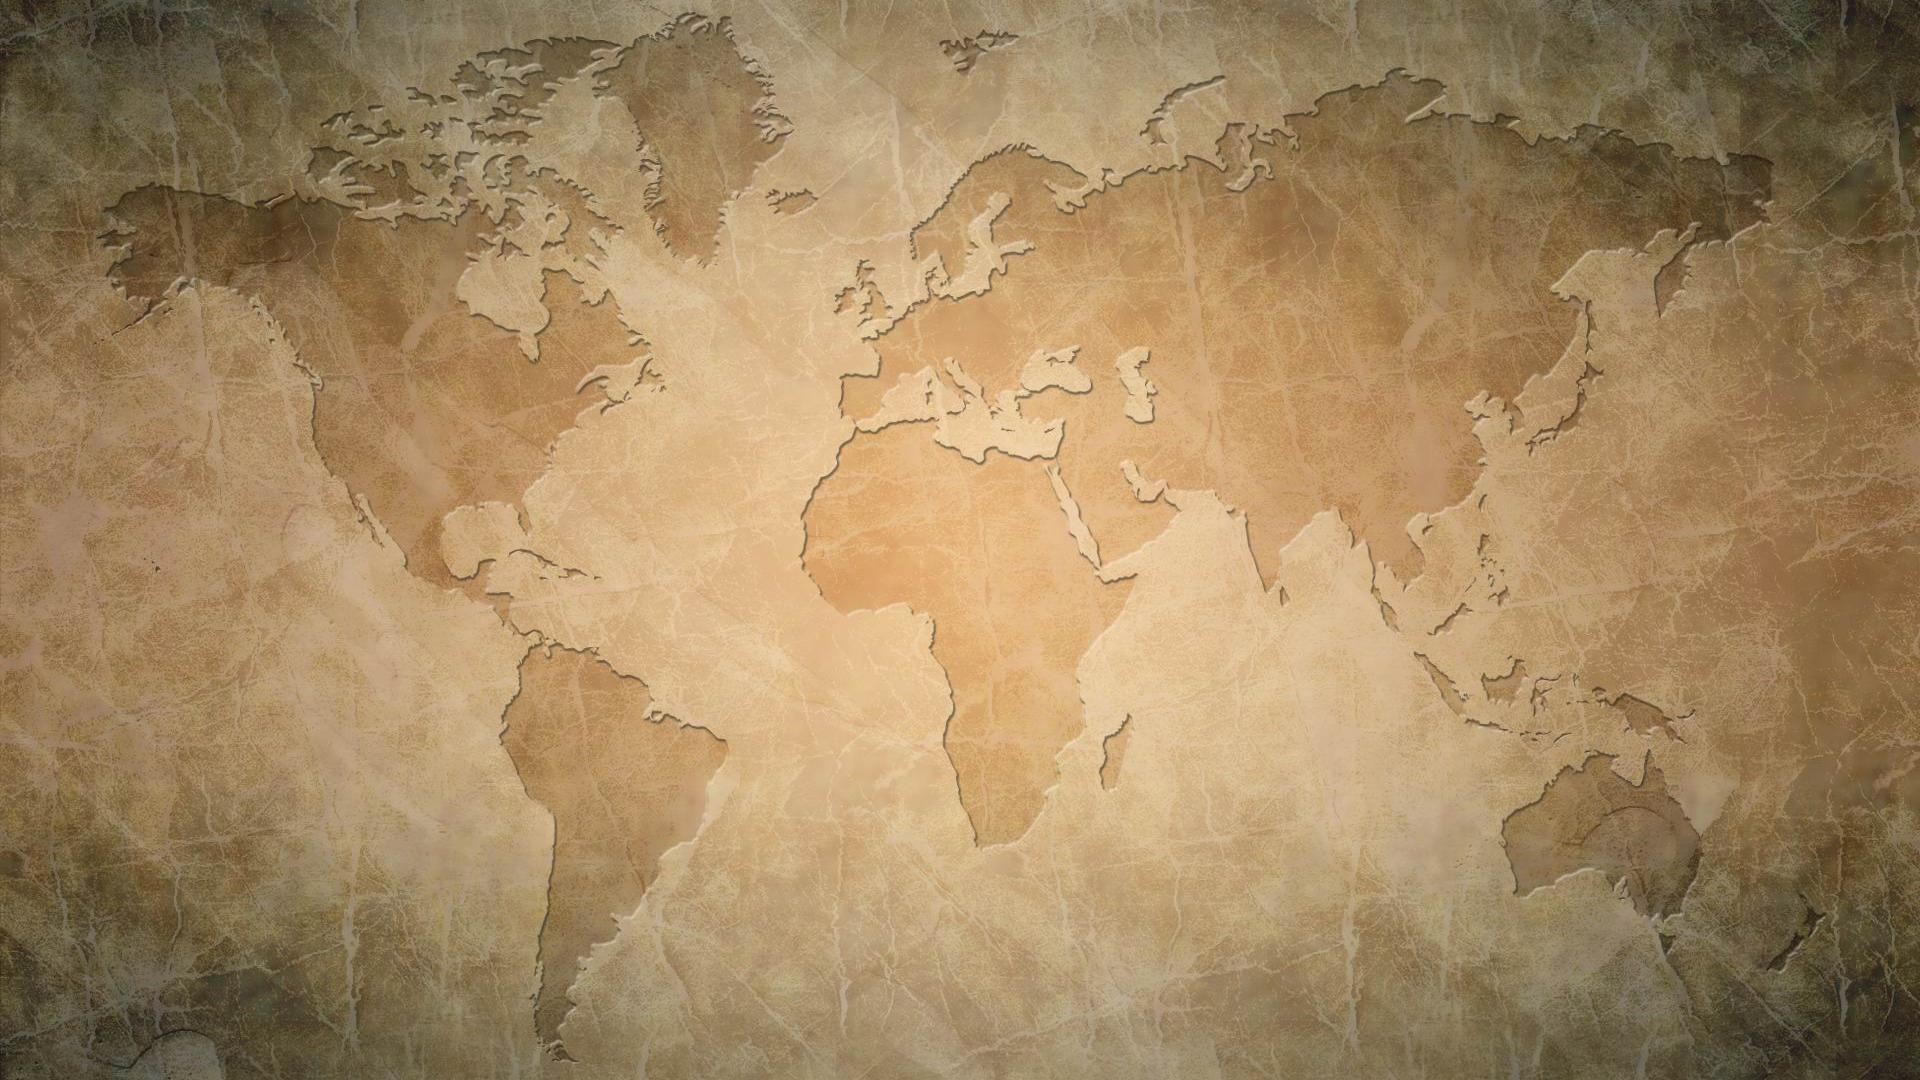 World map desktop background wallpapersafari 1920x1080 hd vector world map background for desktop wide wallpapers 1920x1080 gumiabroncs Gallery